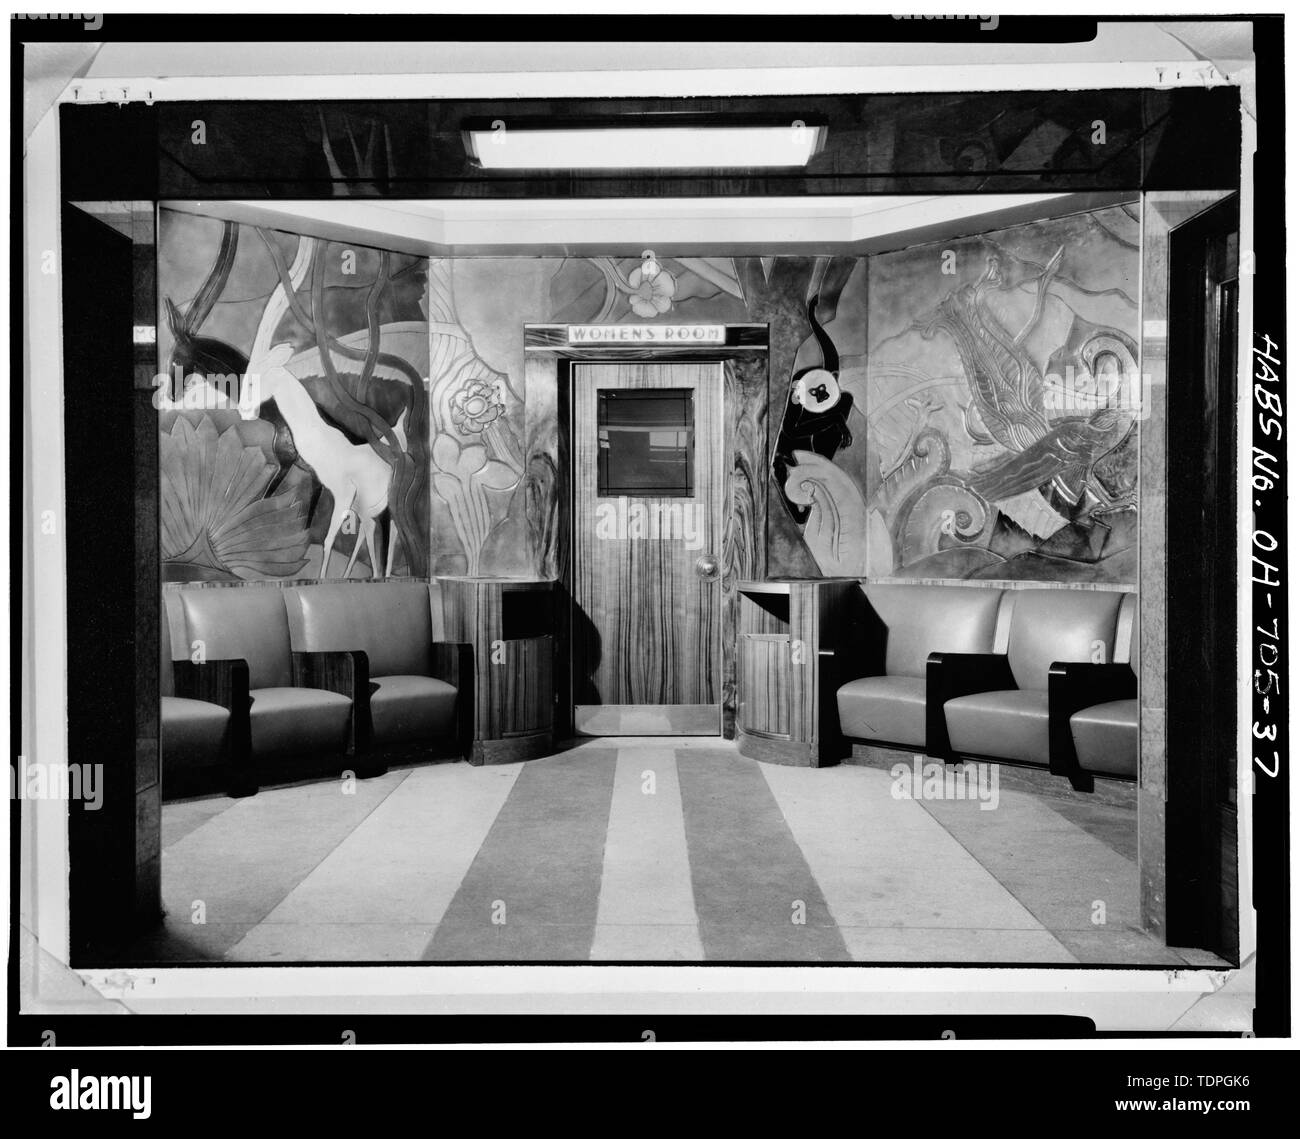 LINOLEUM SCULPTURE, ENTRANCE TO WOMEN'S ROOM OFF RESTAURANT, LOOKING NORTHWEST - Cincinnati Union Terminal, 1301 Western Avenue, Cincinnati, Hamilton County, OH Stock Photo